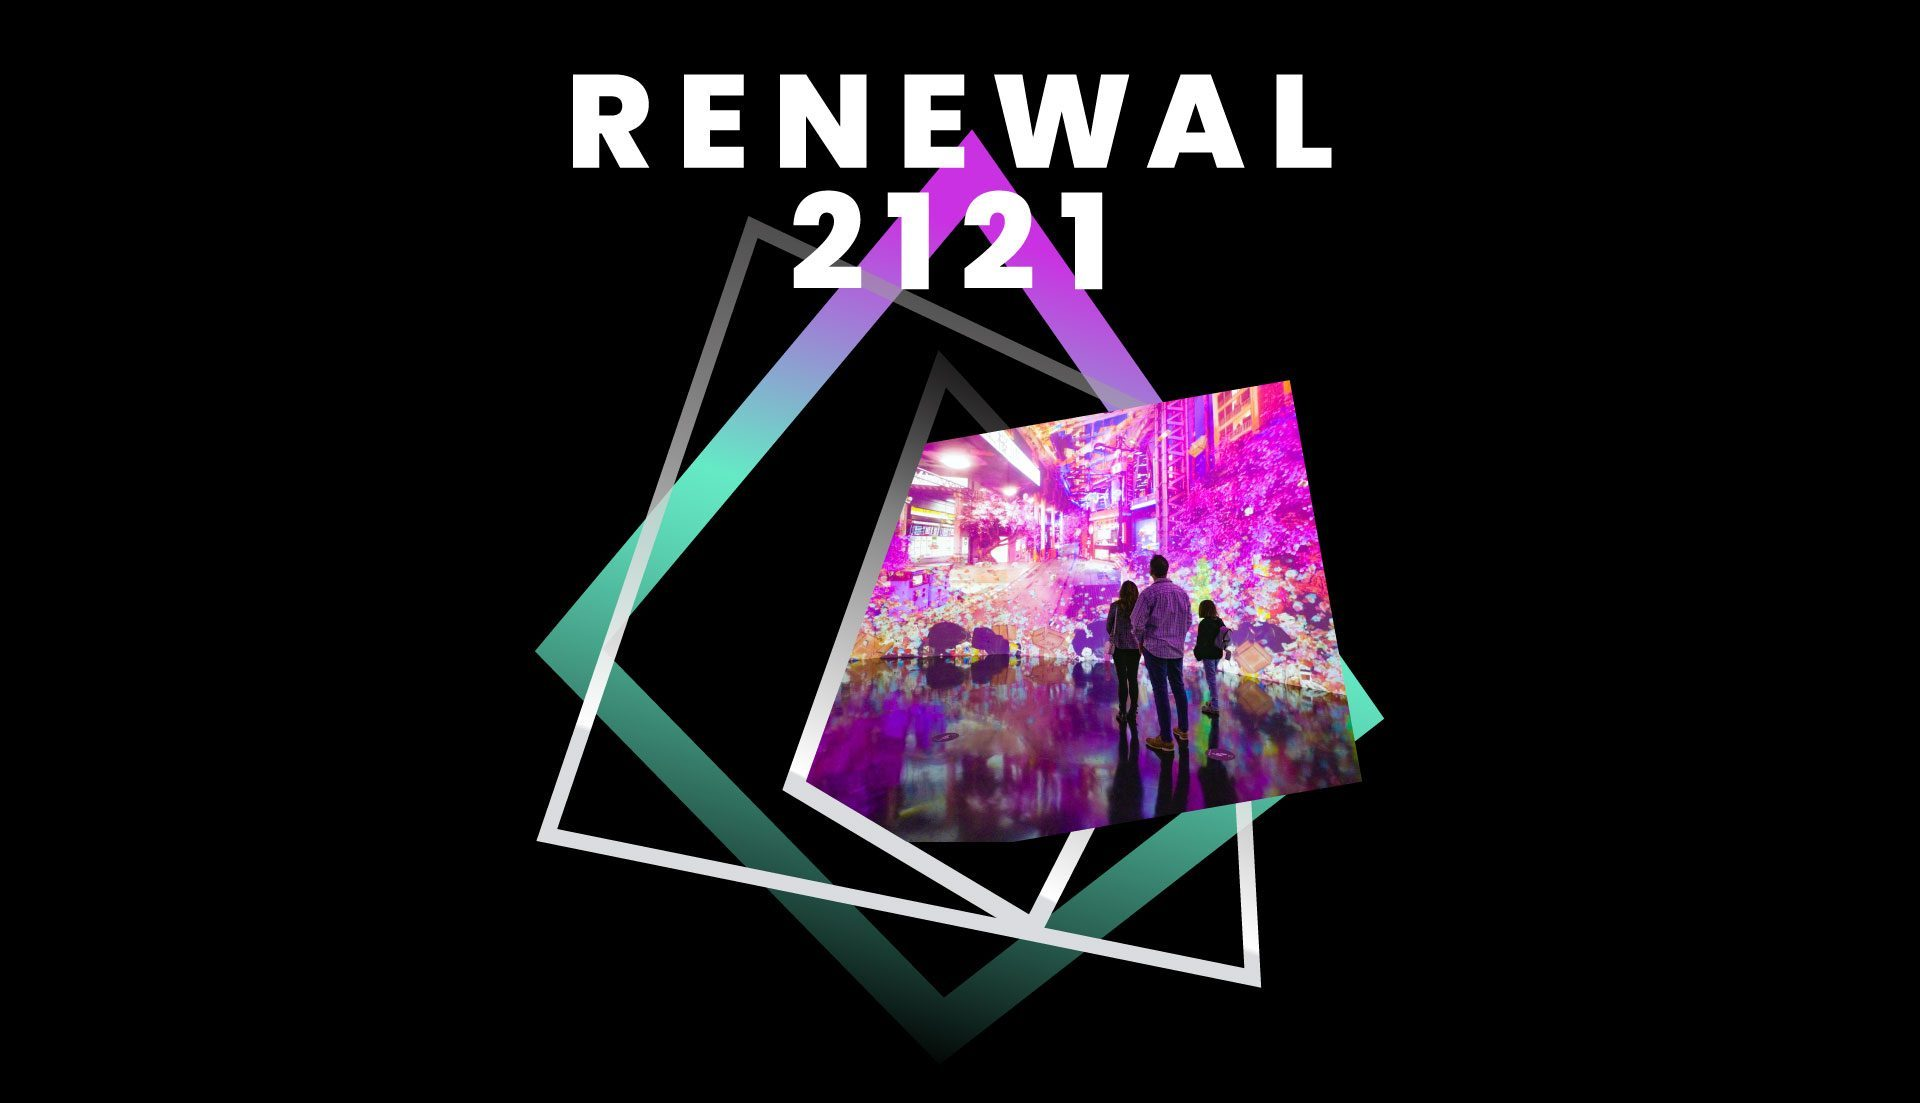 Renewal 2121 logo design with photograph of family looking at 270 degree projection art visuals